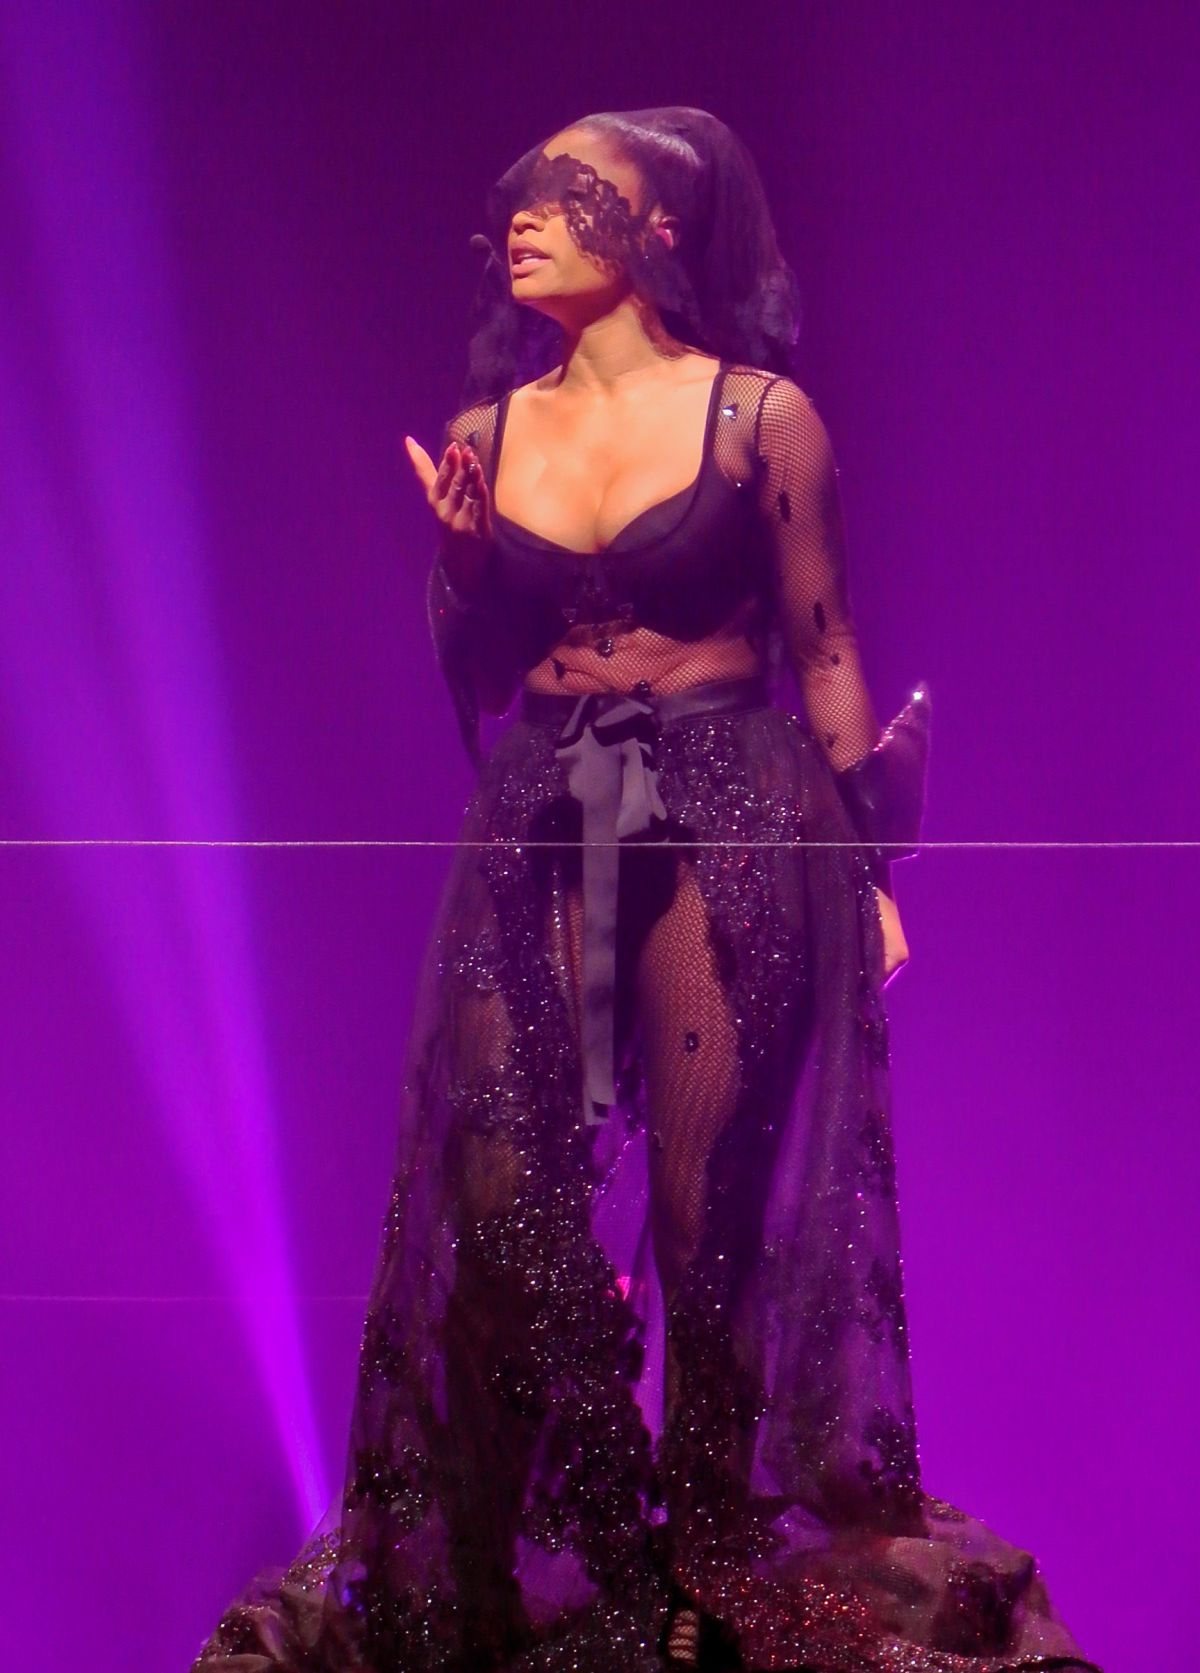 nicki-minaj-performs-on-the-pinkprint-tour-in-birmingham_3